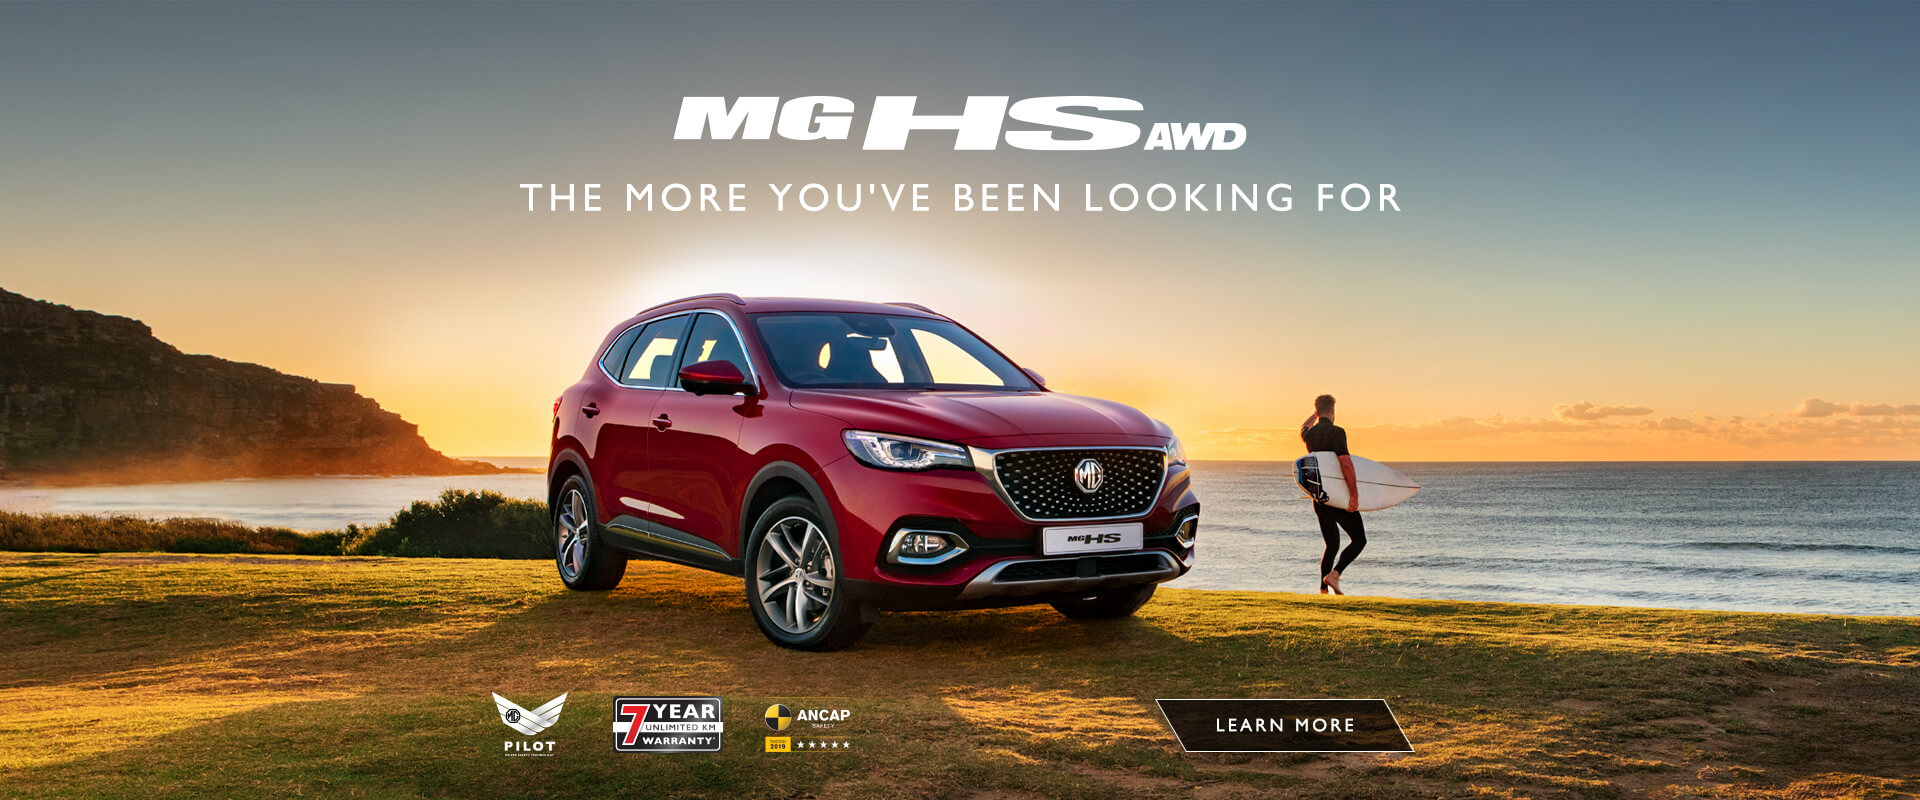 MG HS AWD. The more you've been looking for.